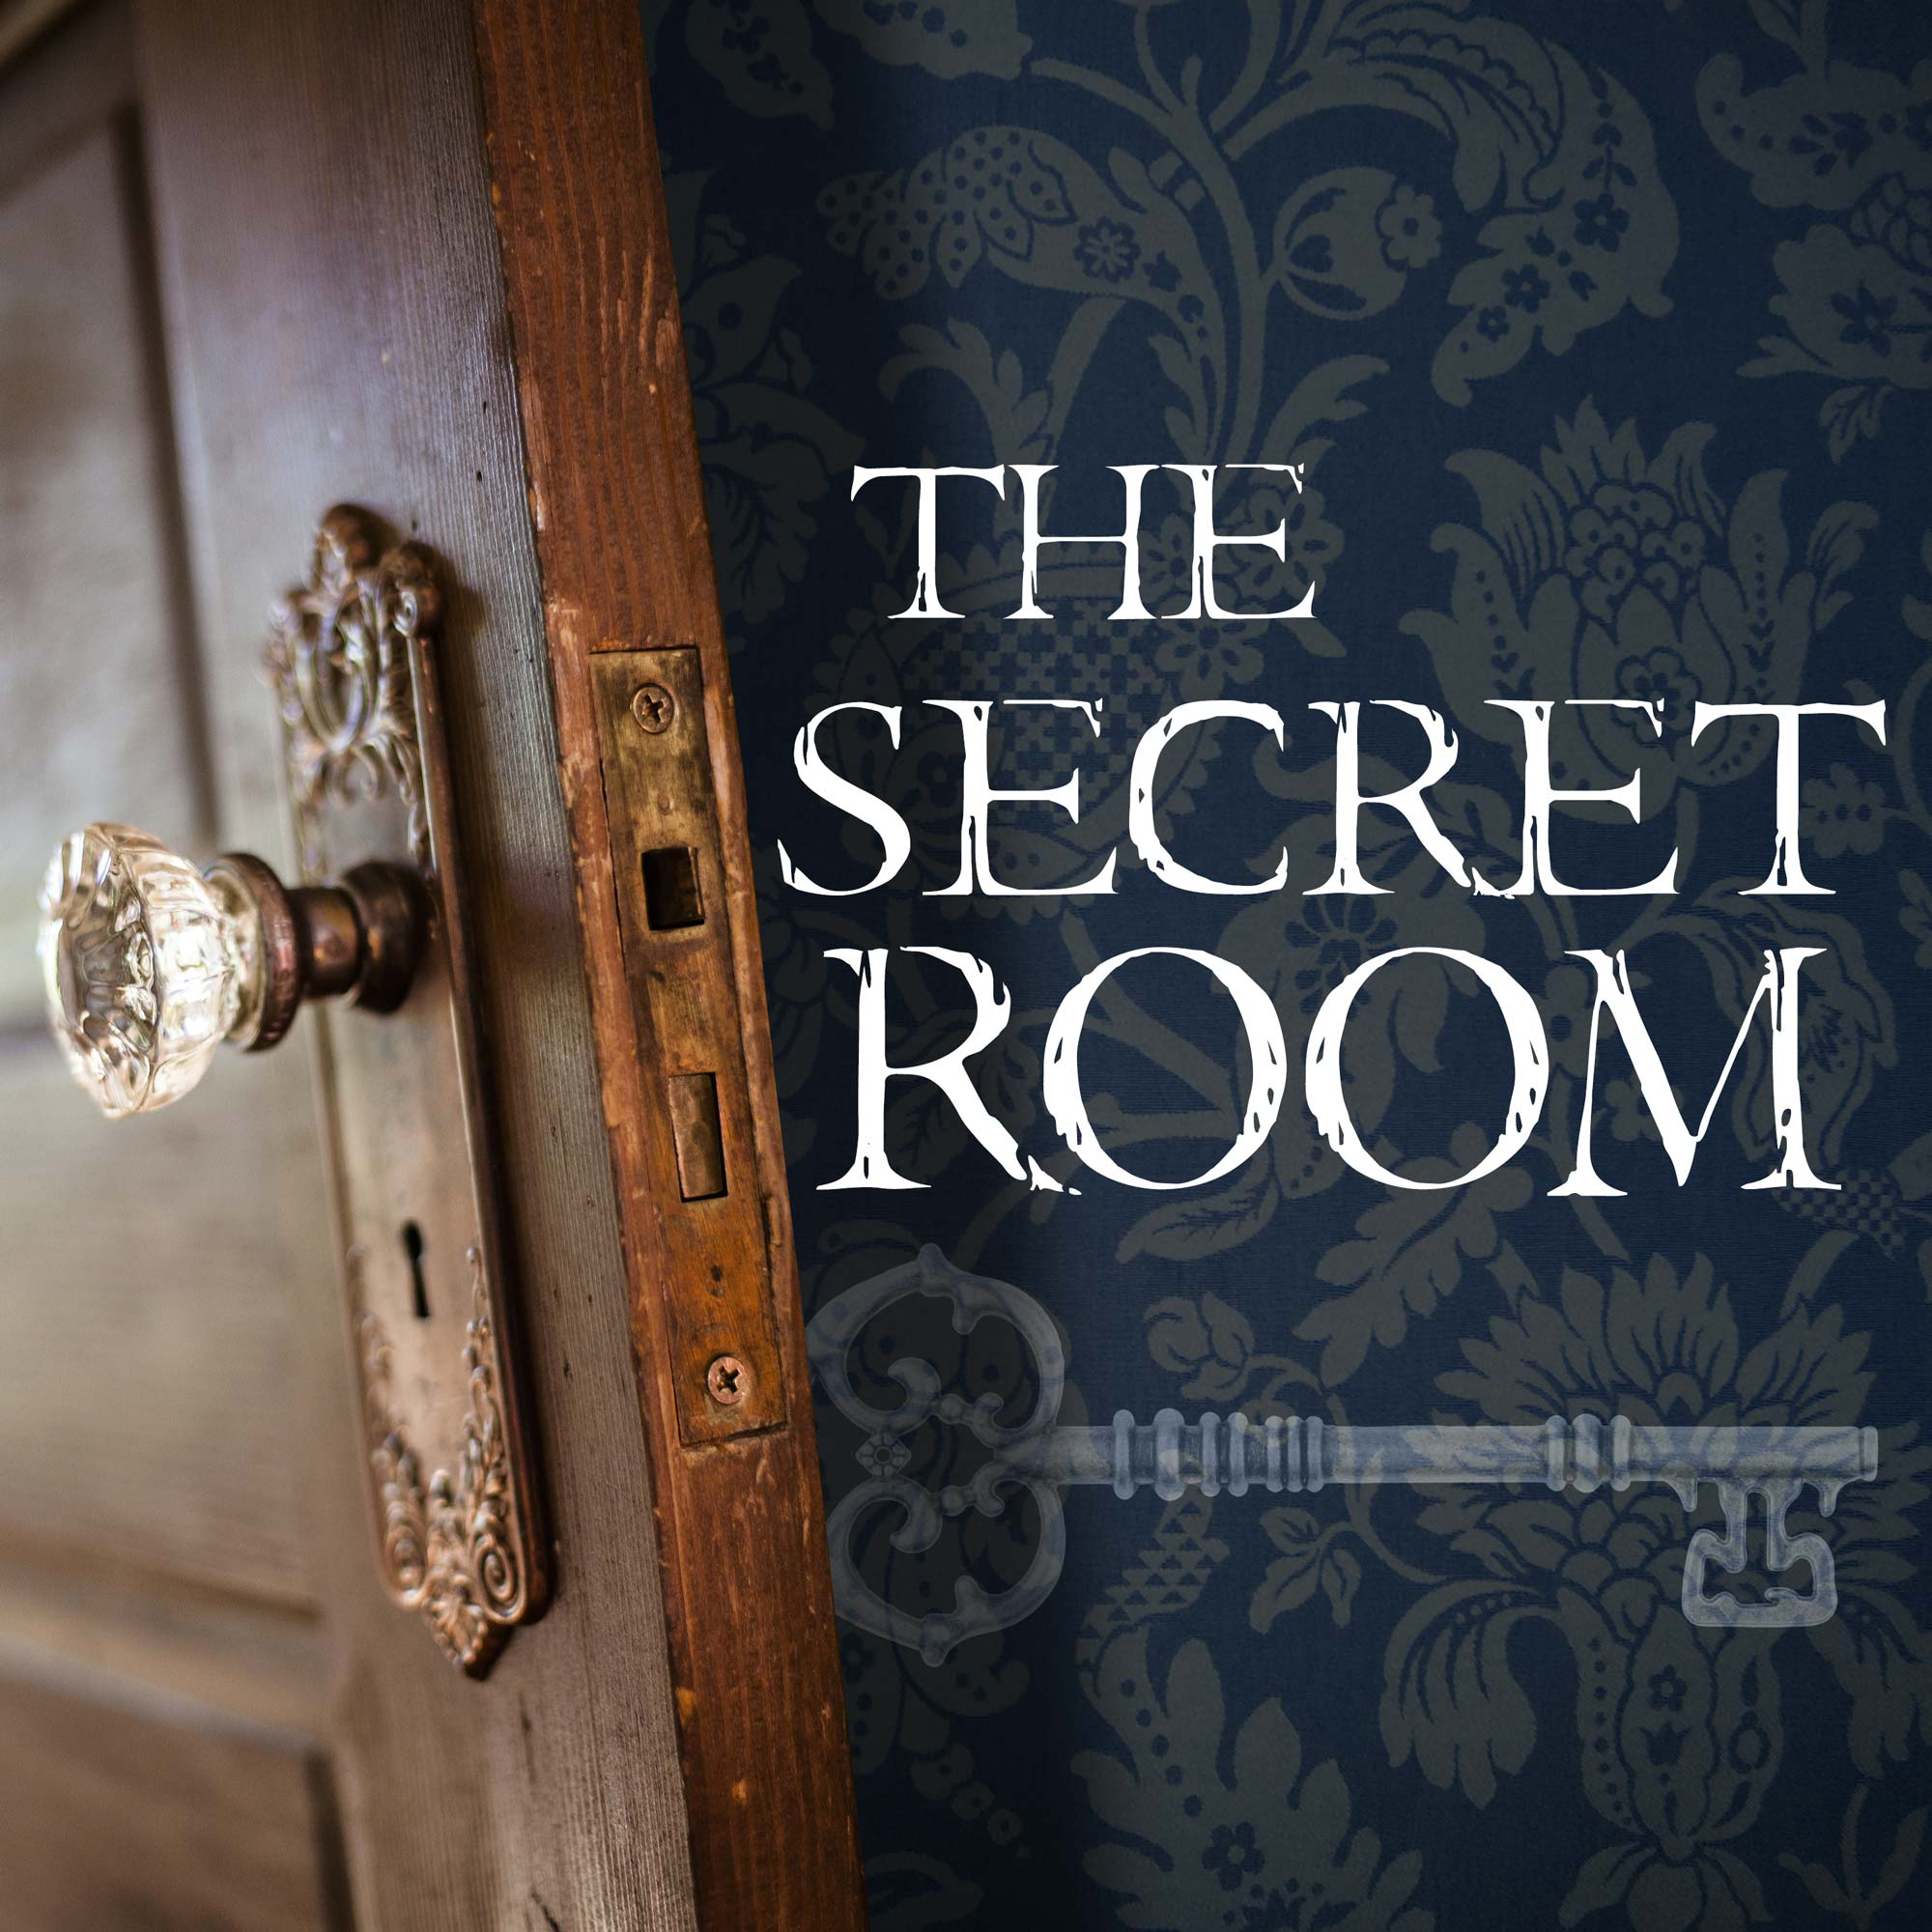 The Secret Room | A True Stories Podcast